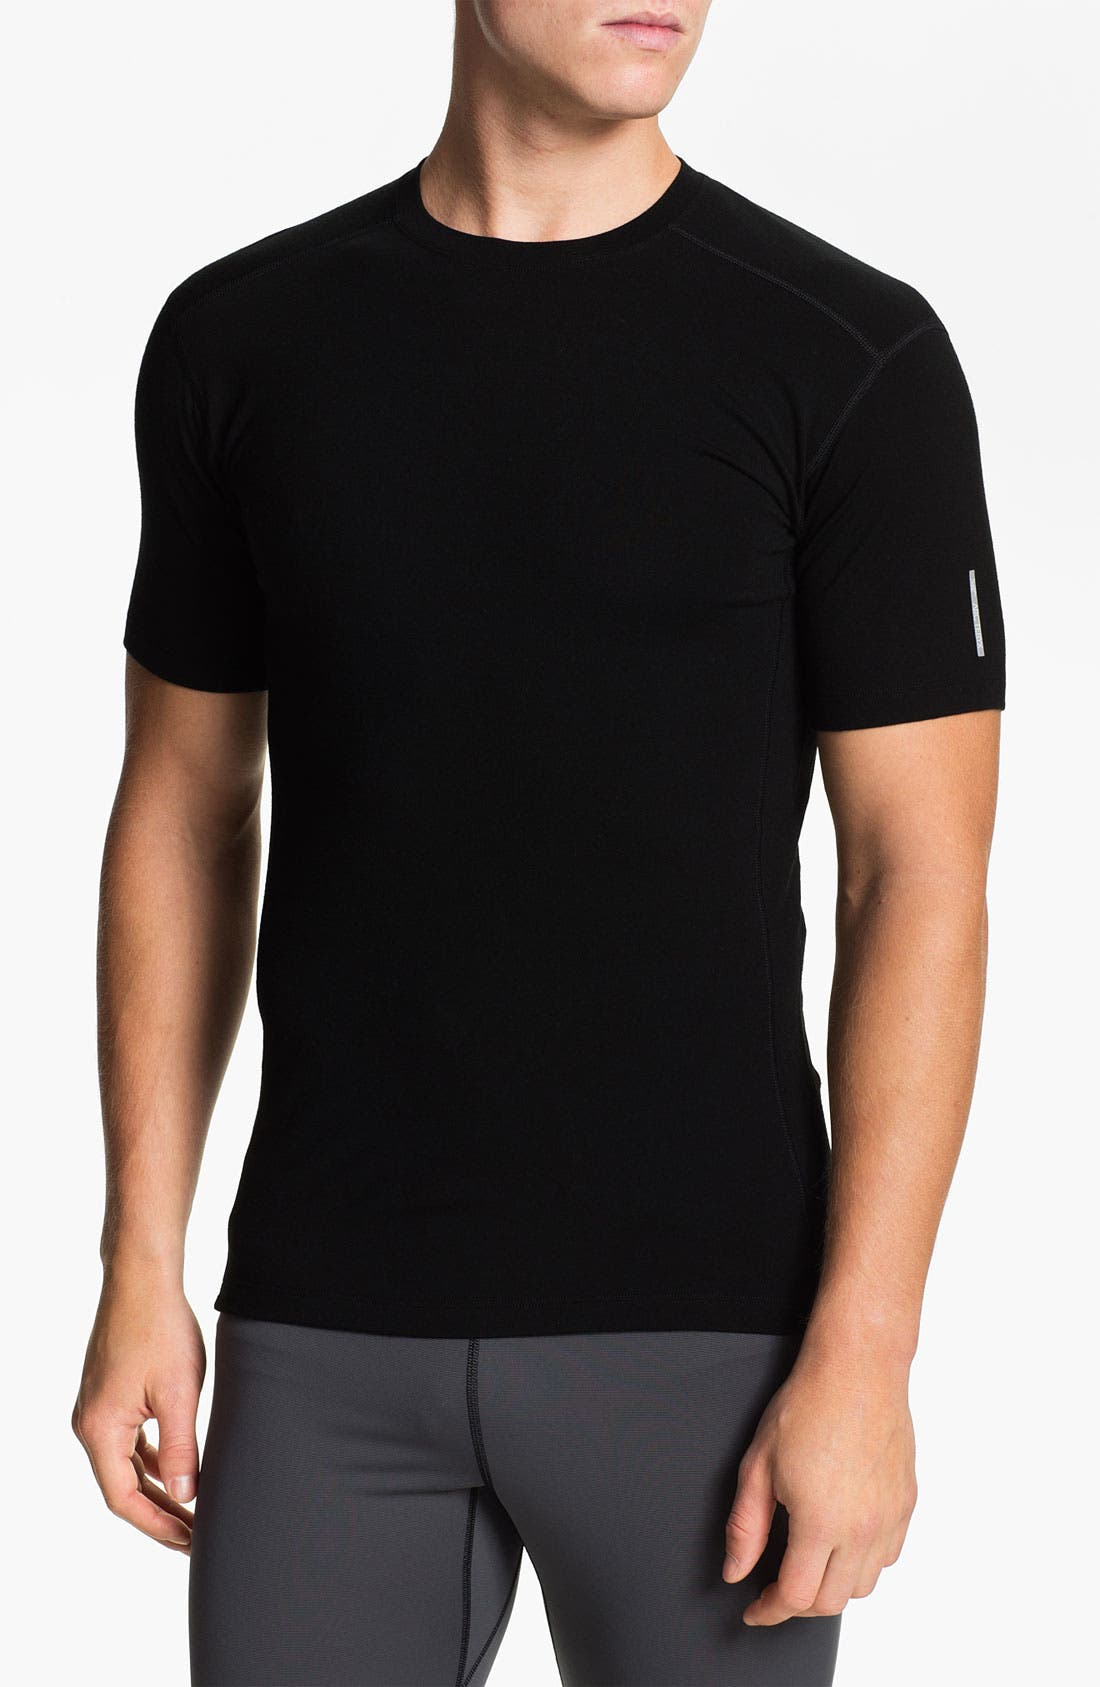 Alternate Image 1 Selected - Arc'teryx 'Eon SLW' T-Shirt (Online Exclusive)